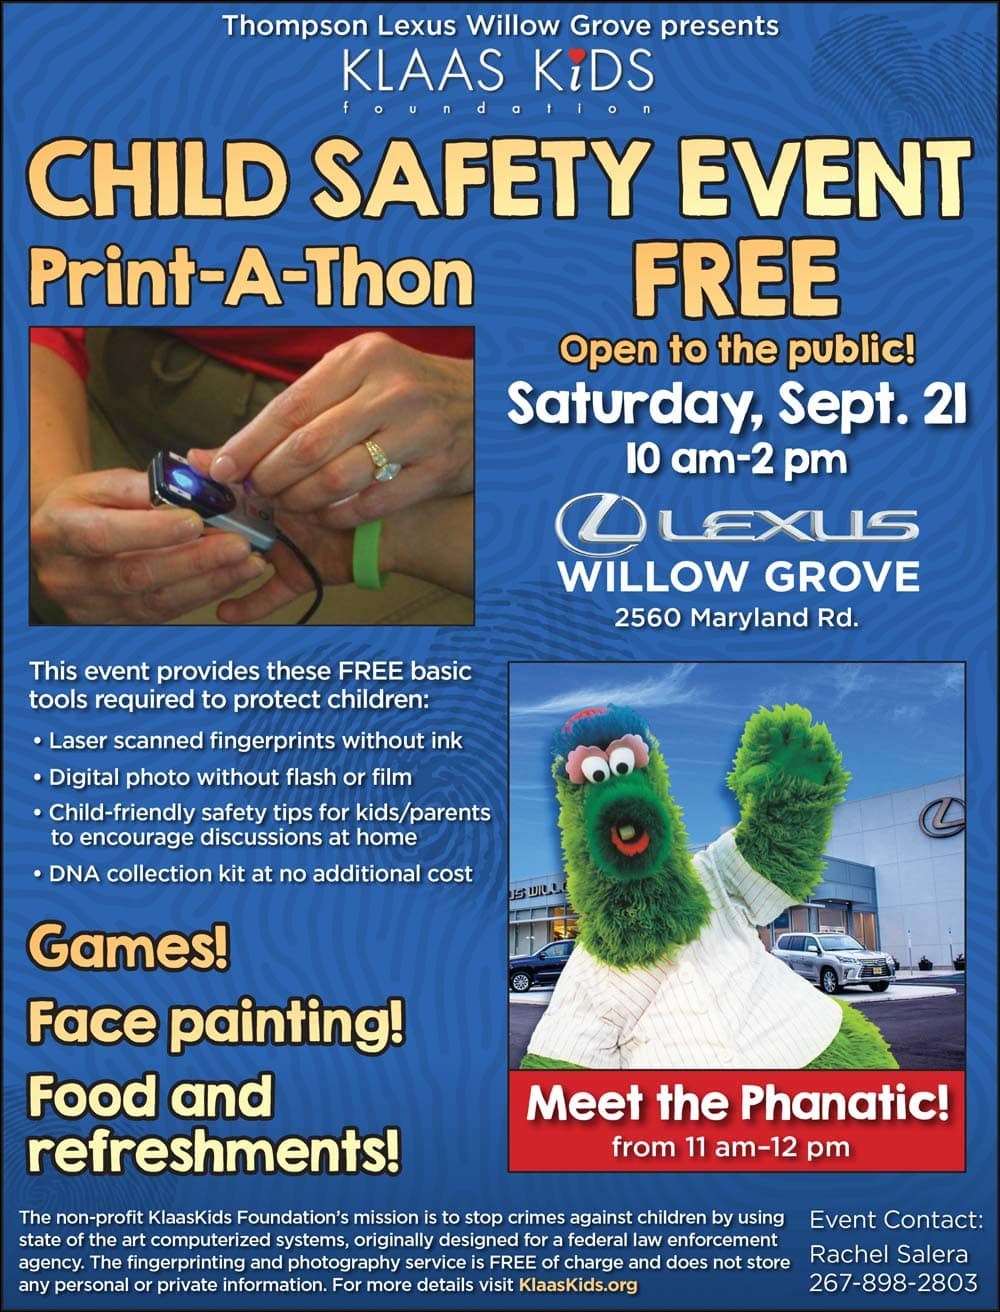 KlaasKids Child Safety Event Flyer